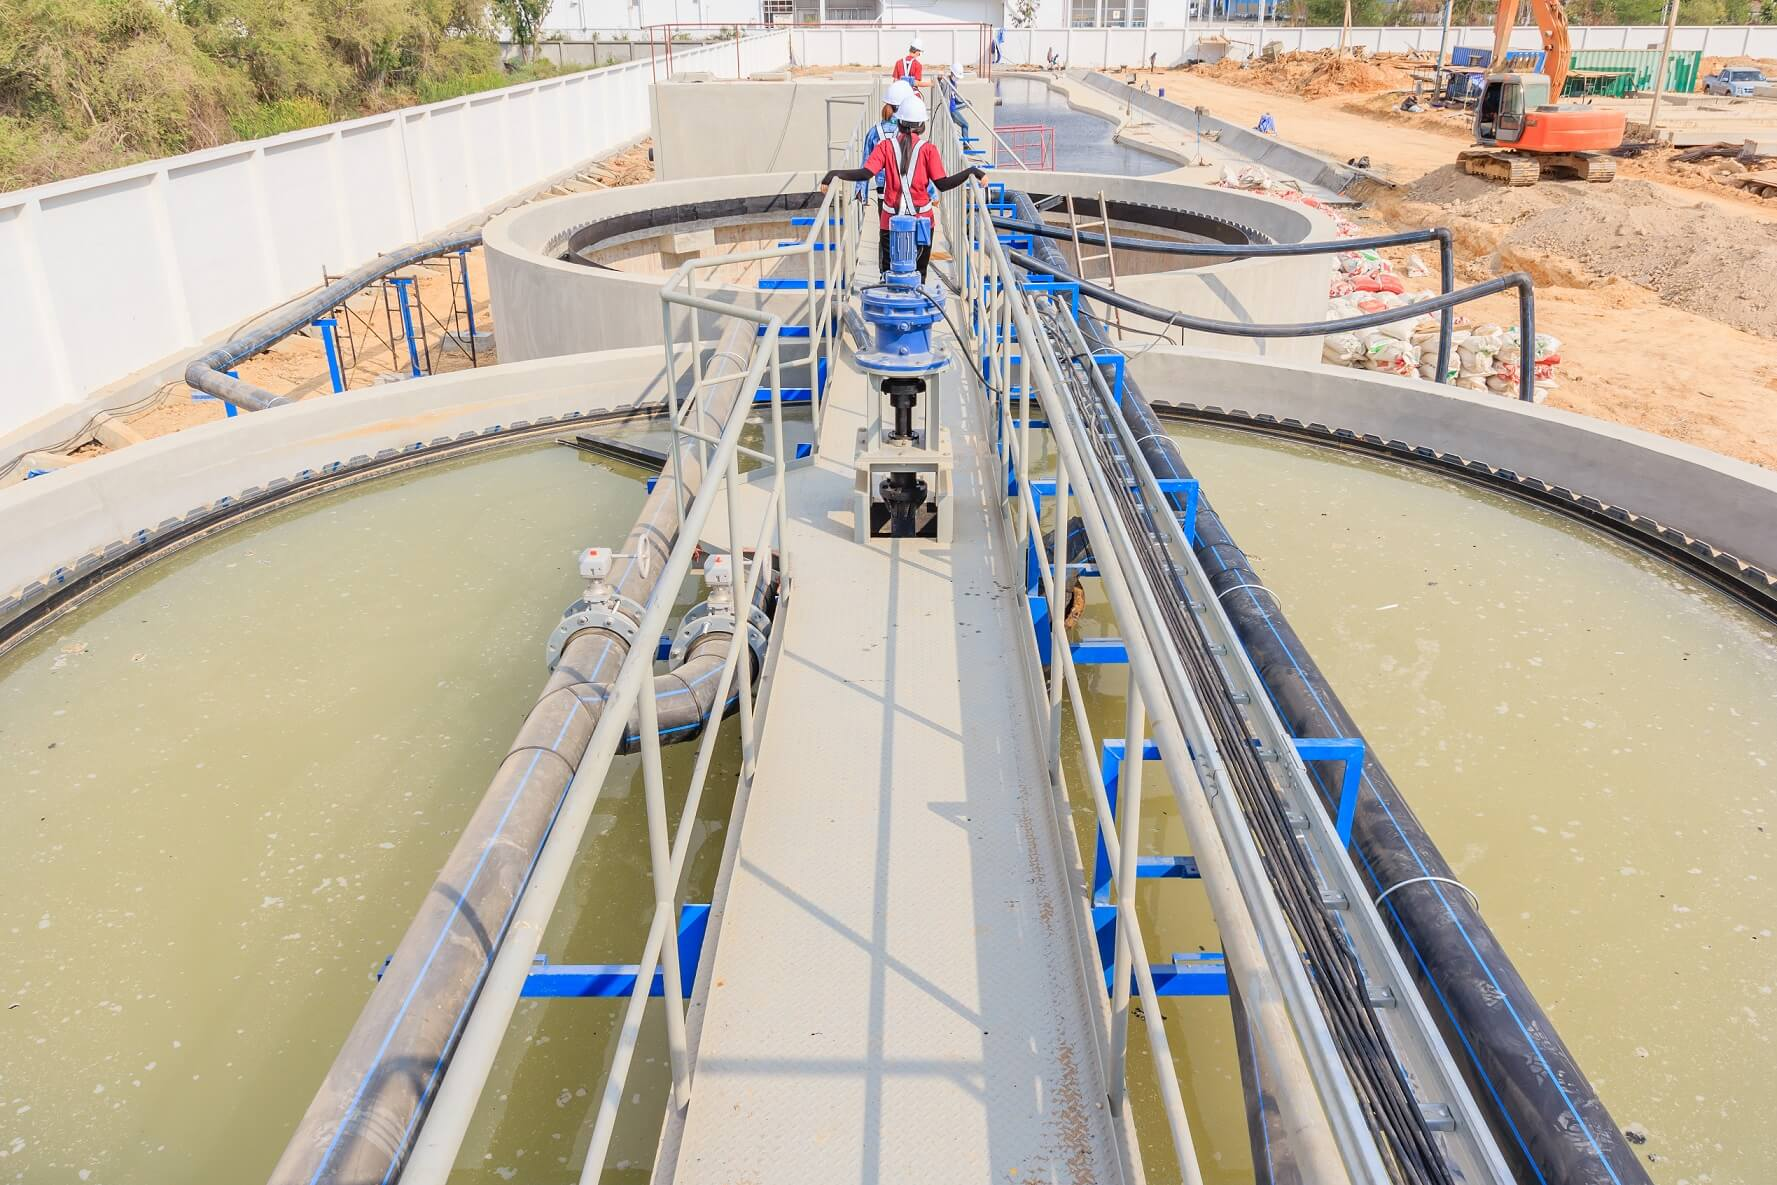 modern-urban-wastewater-treatment-plant